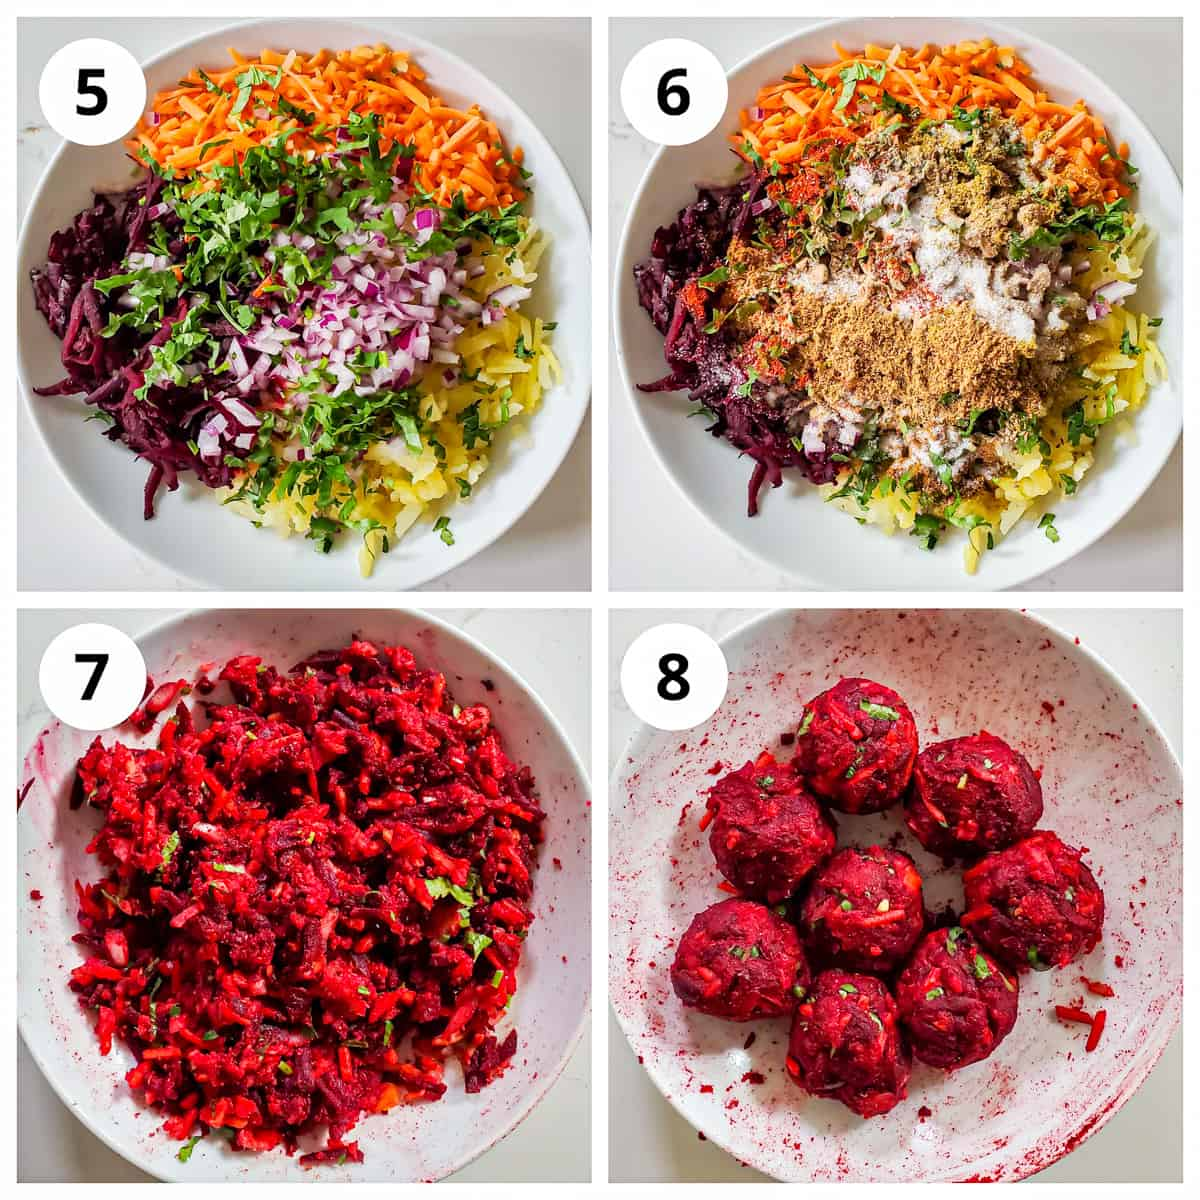 Steps for making he beetroot paratha sttuffing